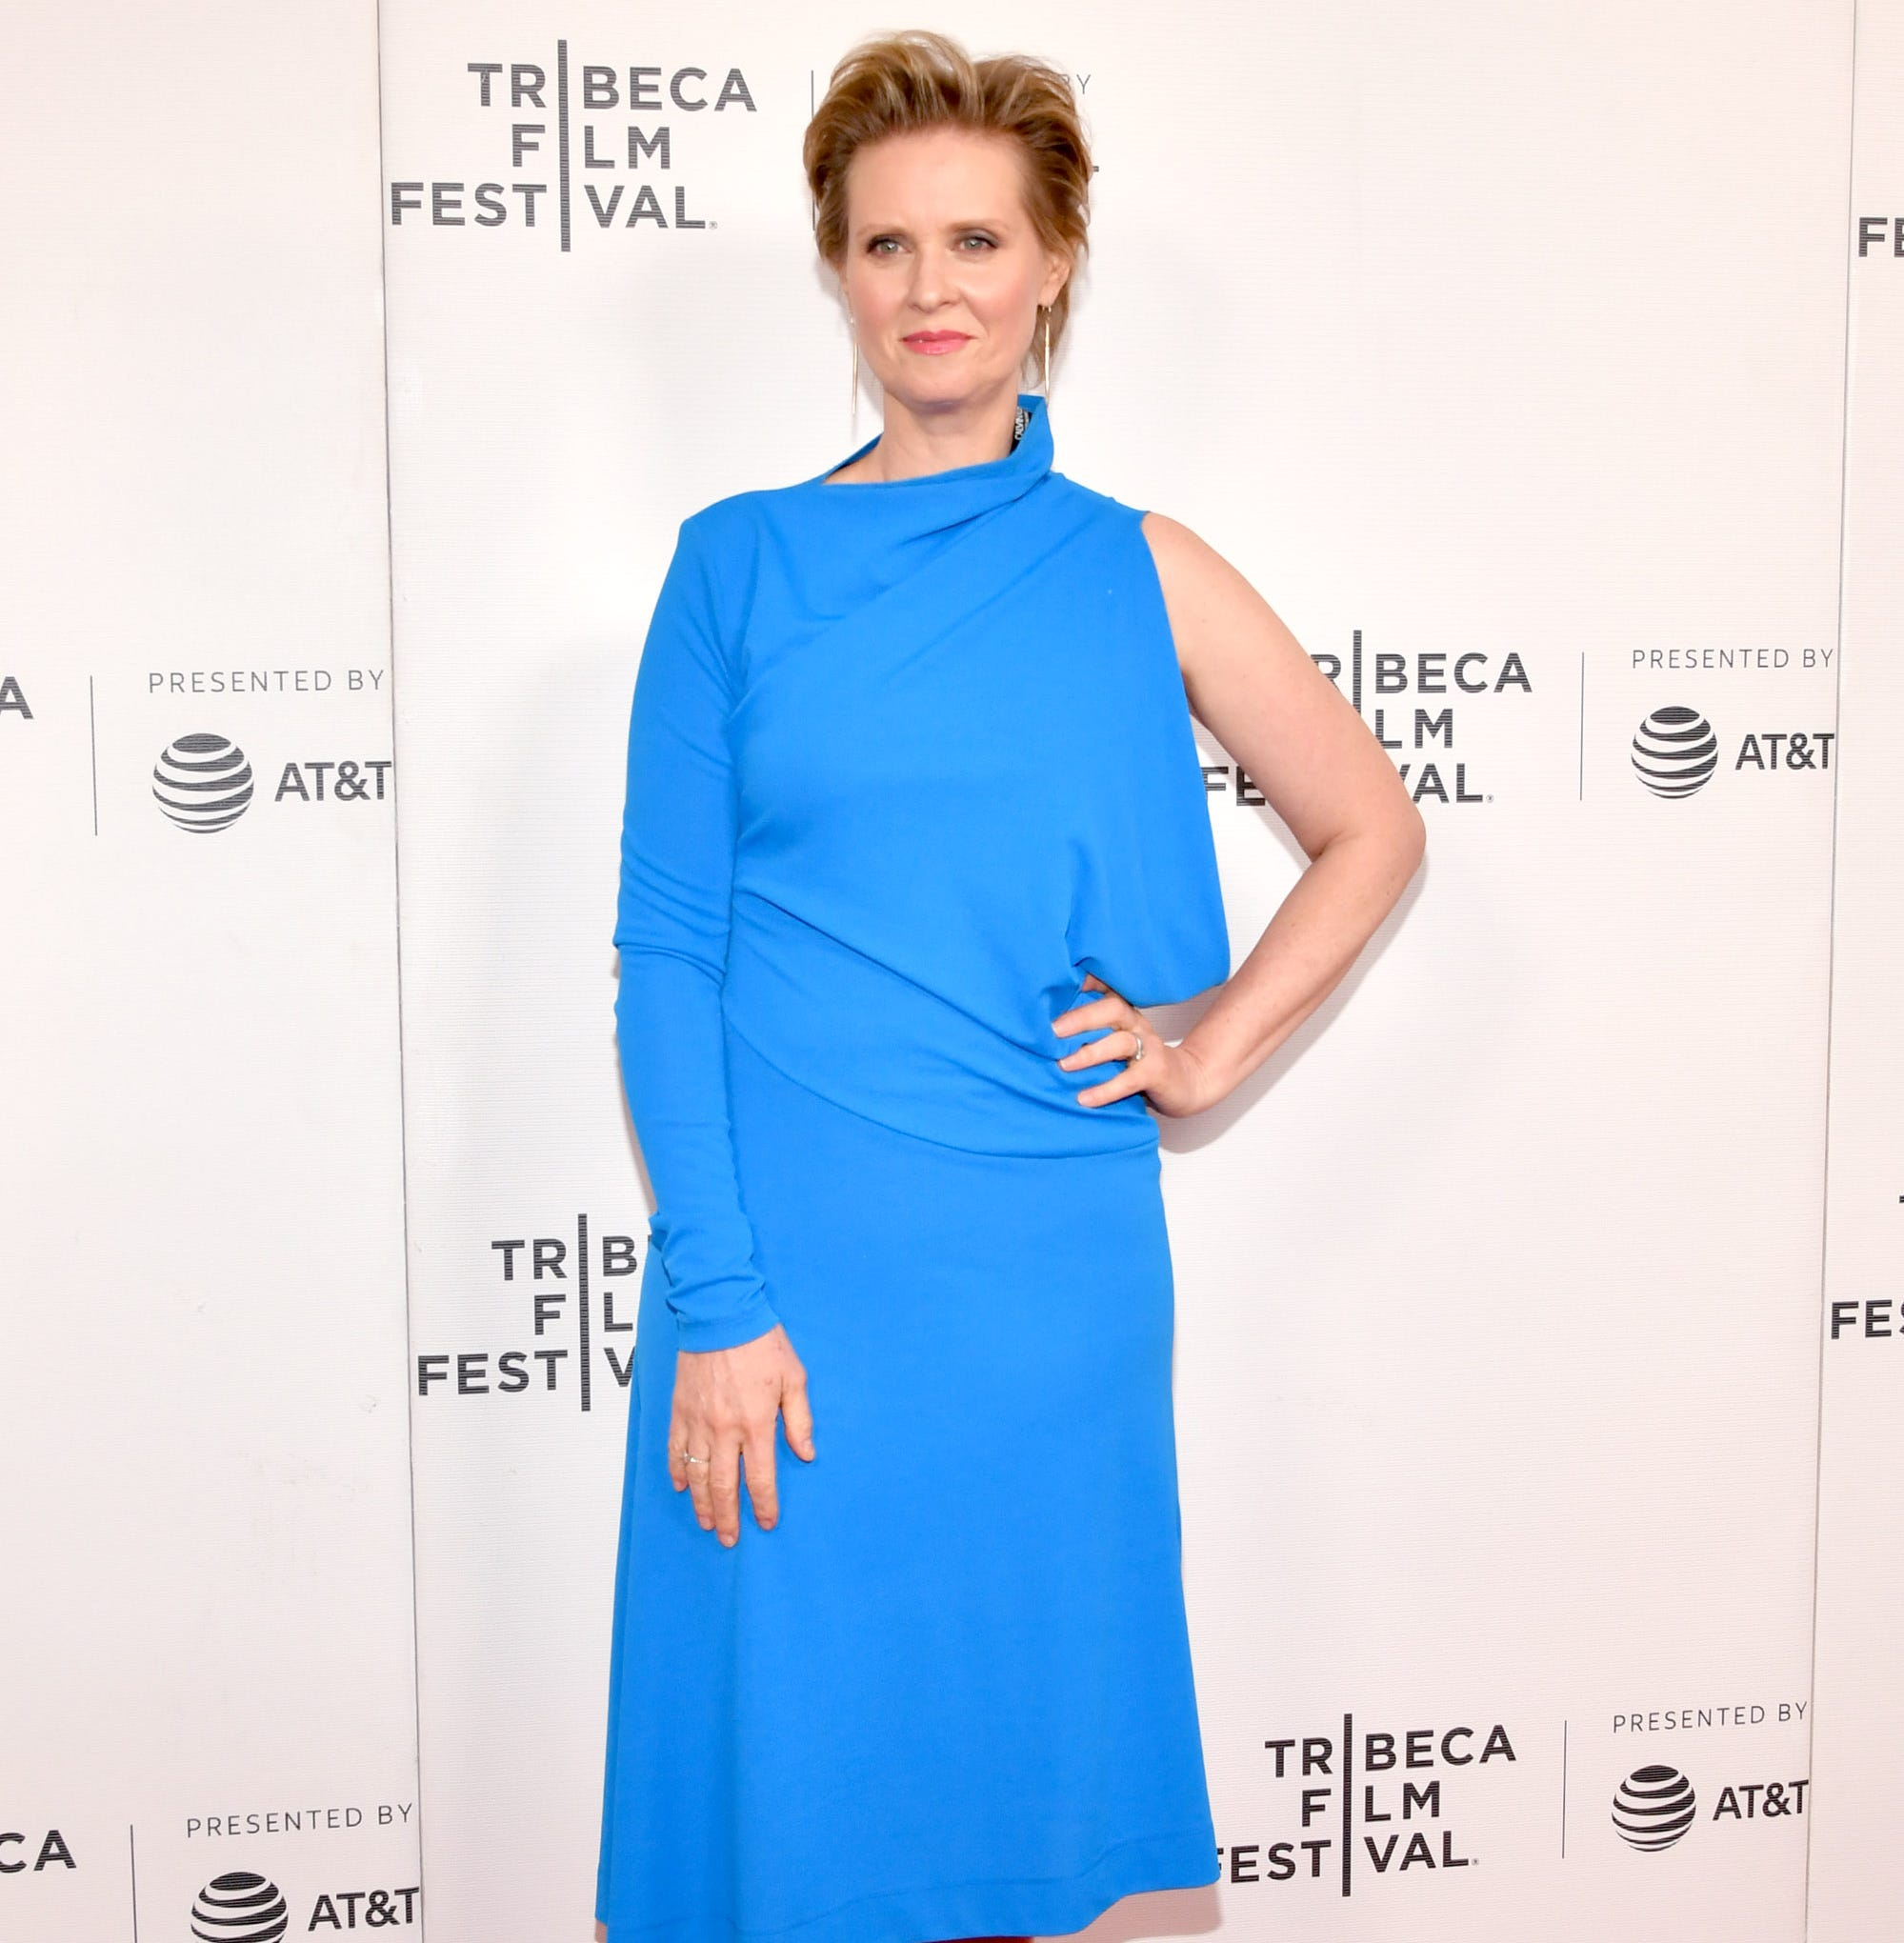 "NEW YORK, NEW YORK - APRIL 27: Cynthia Nixon attends the ""Stray Dolls"" screening during the 2019 Tribeca Film Festival at Village East Cinema on April 27, 2019 in New York City. (Photo by Slaven Vlasic/Getty Images for Tribeca Film Festival) ORG XMIT: 775329685 ORIG FILE ID: 1145539916"